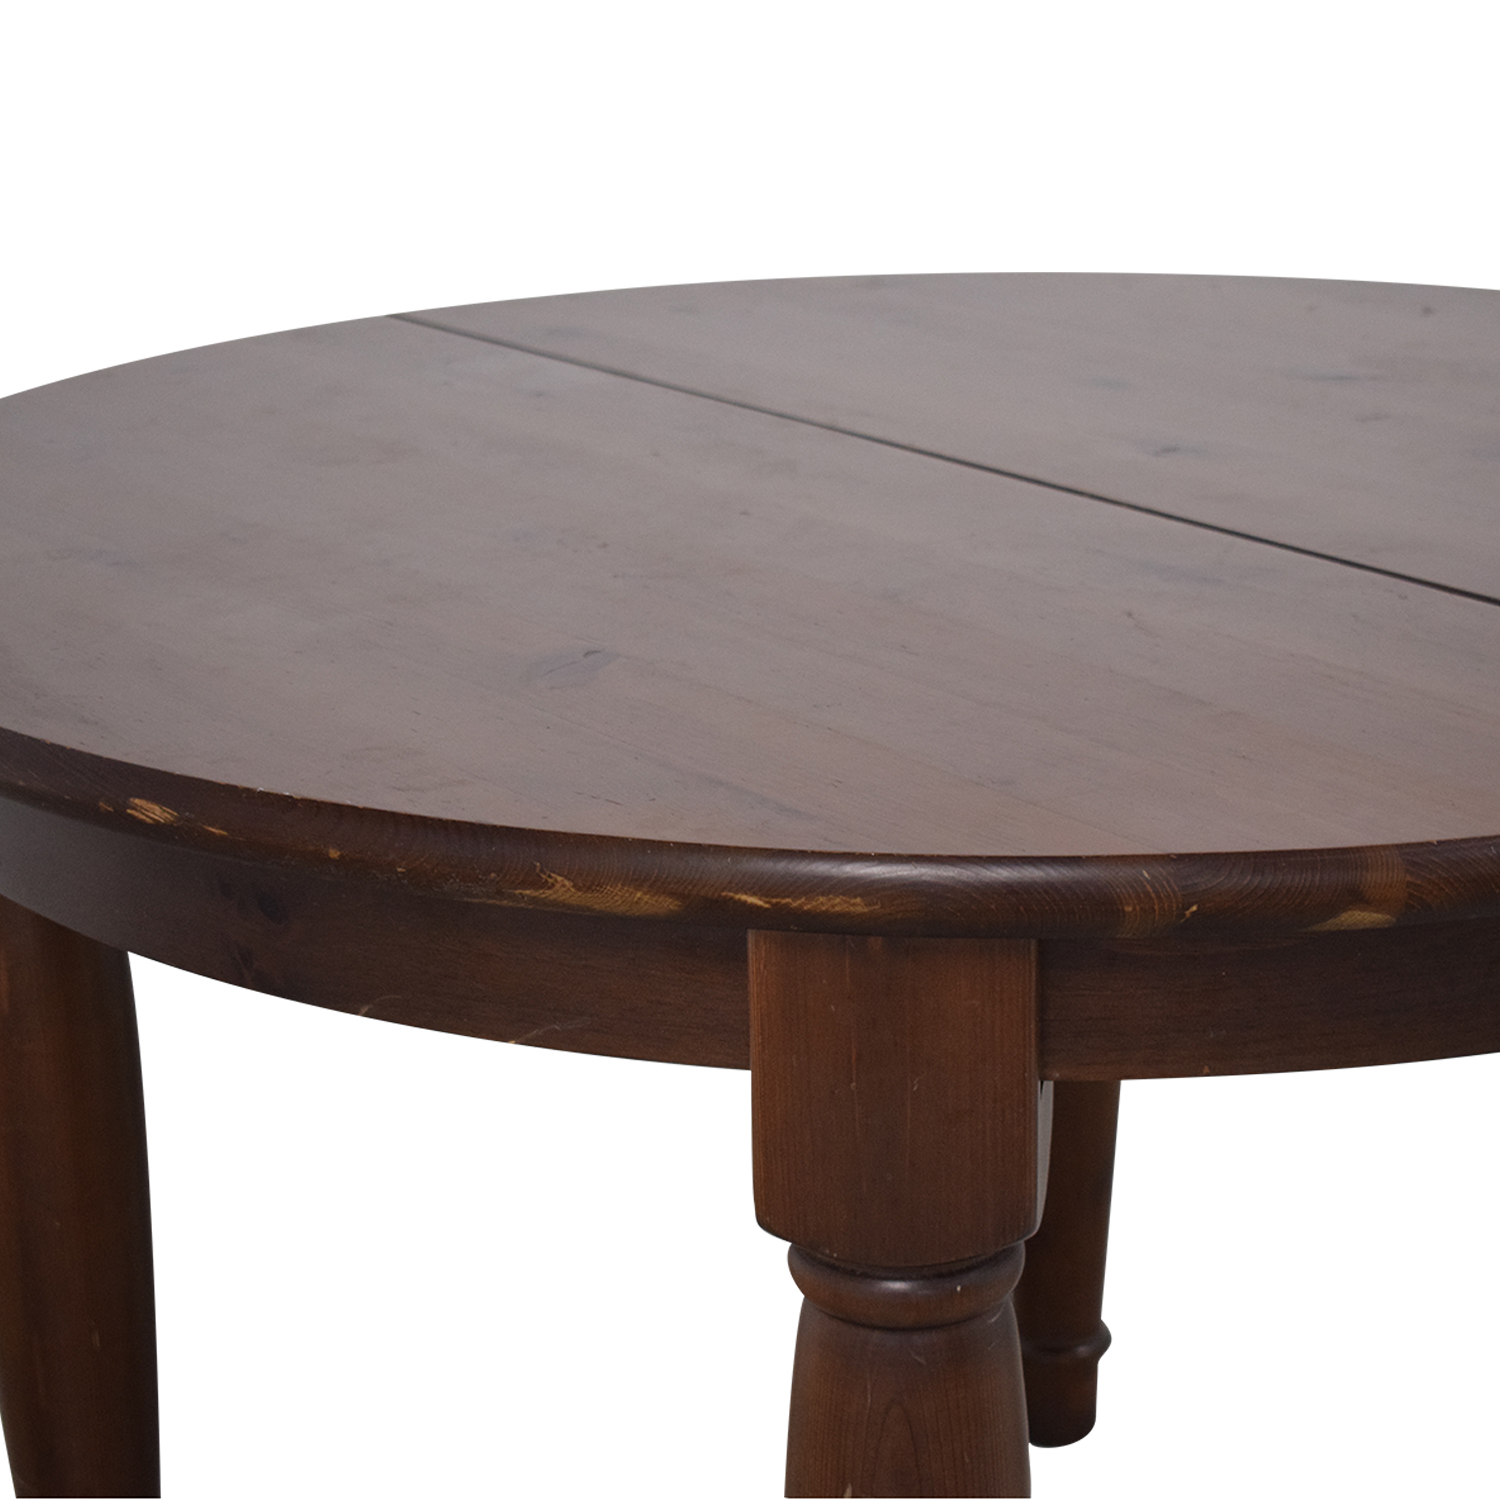 Pottery Barn Pottery Barn Round Extension Dining Table Dinner Tables